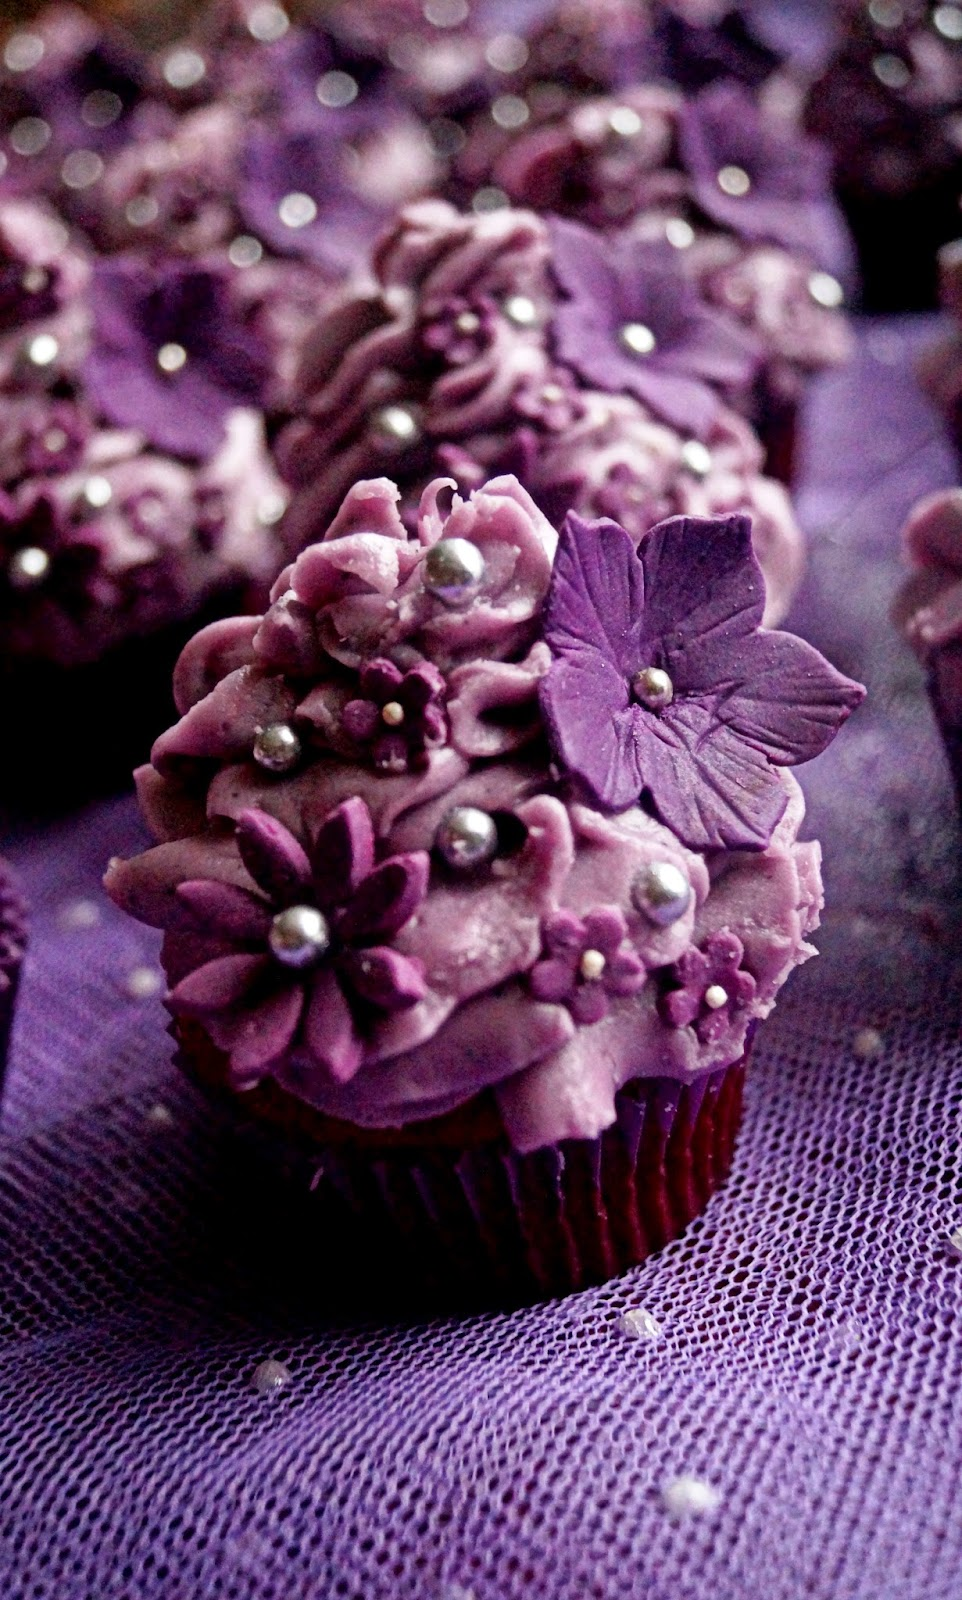 http://cupcakeluvs.blogspot.dk/2015/02/purple-inspiration-purple-dreams-cupcake.html